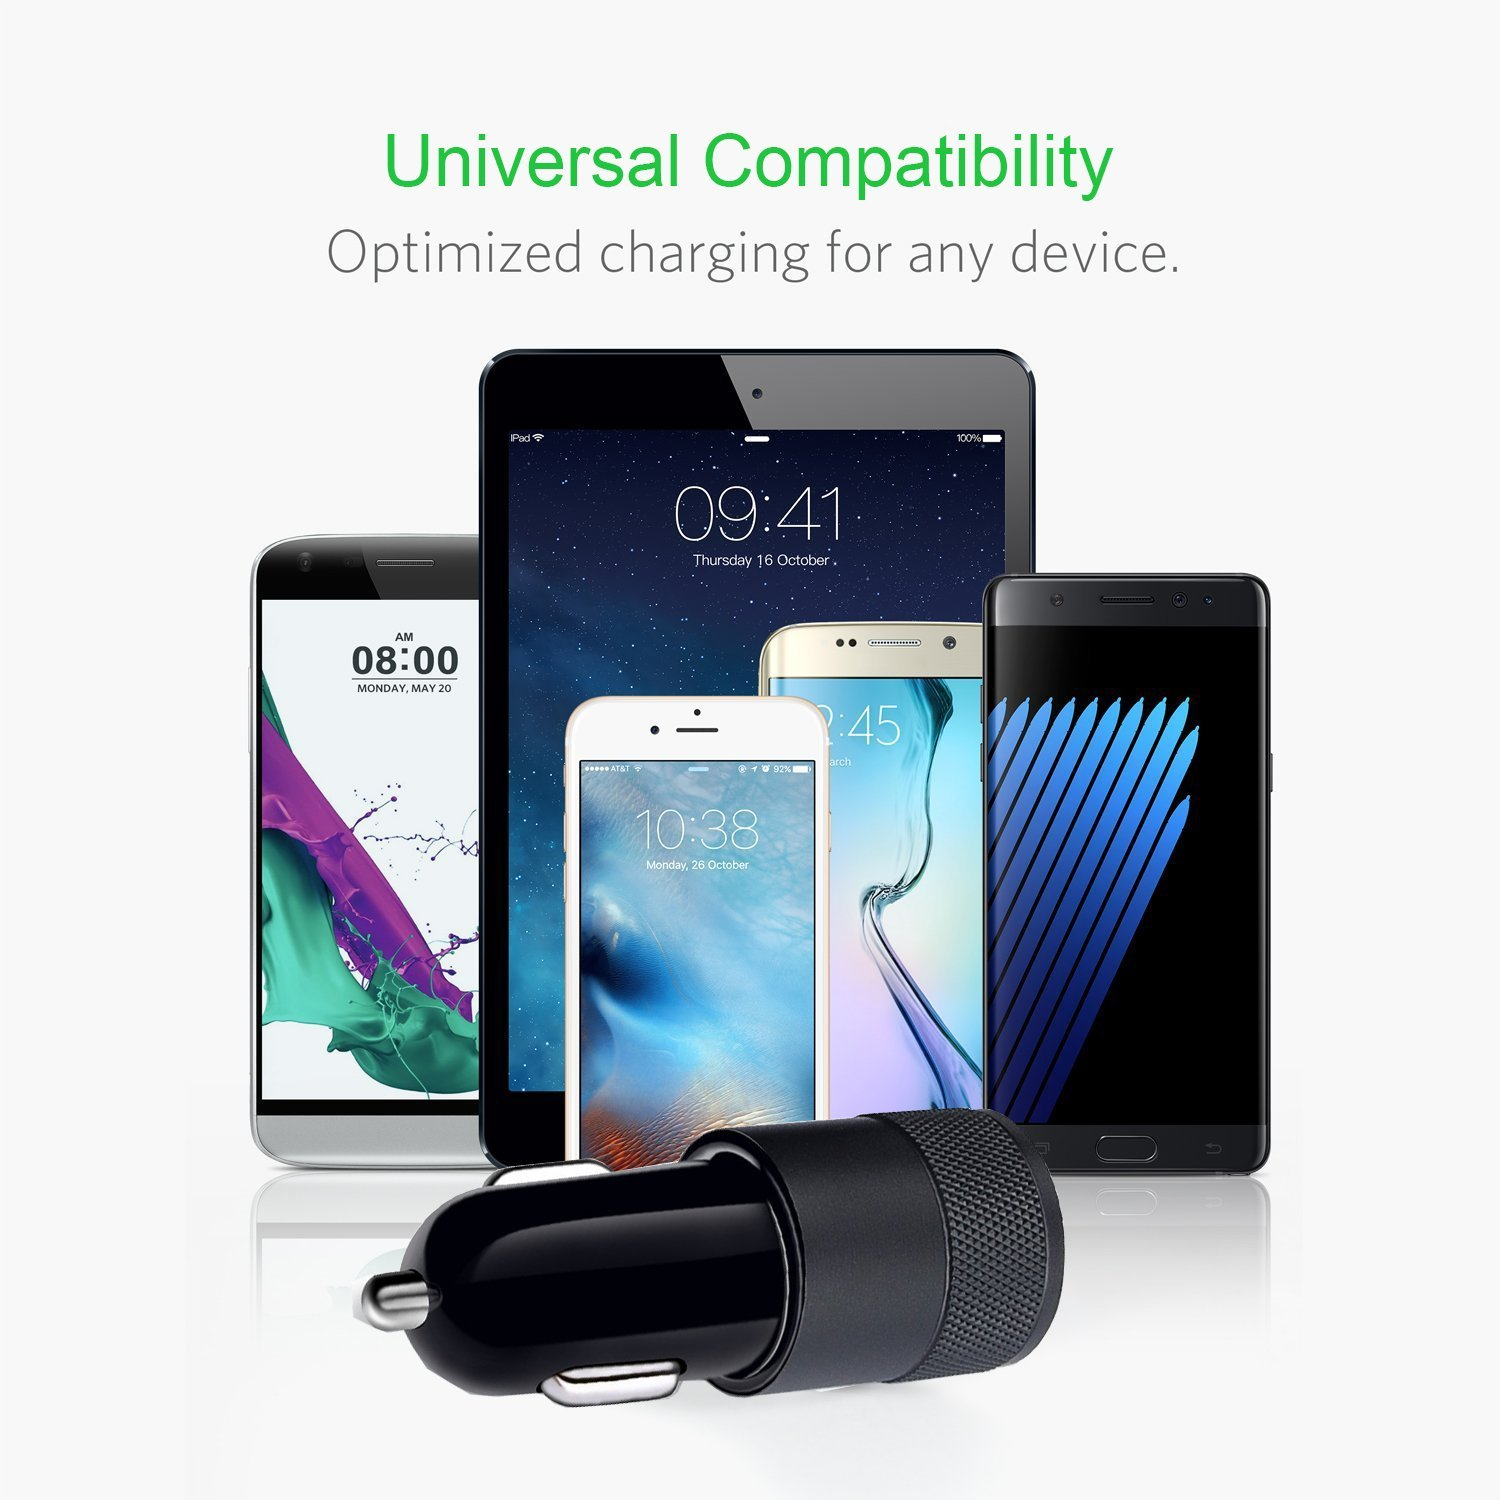 Quick Charge 3.0 Car Charger 40W Car Adapter with Dual QC USB Ports with 1-Pack 3.3ft Type C Cord for Samsung Galaxy Note 8 S9 S8 S8 Plus S7, iPhone X 8 8 Plus, iPad Pro 2017, Google Pixel and More by CovertSafe (Image #6)